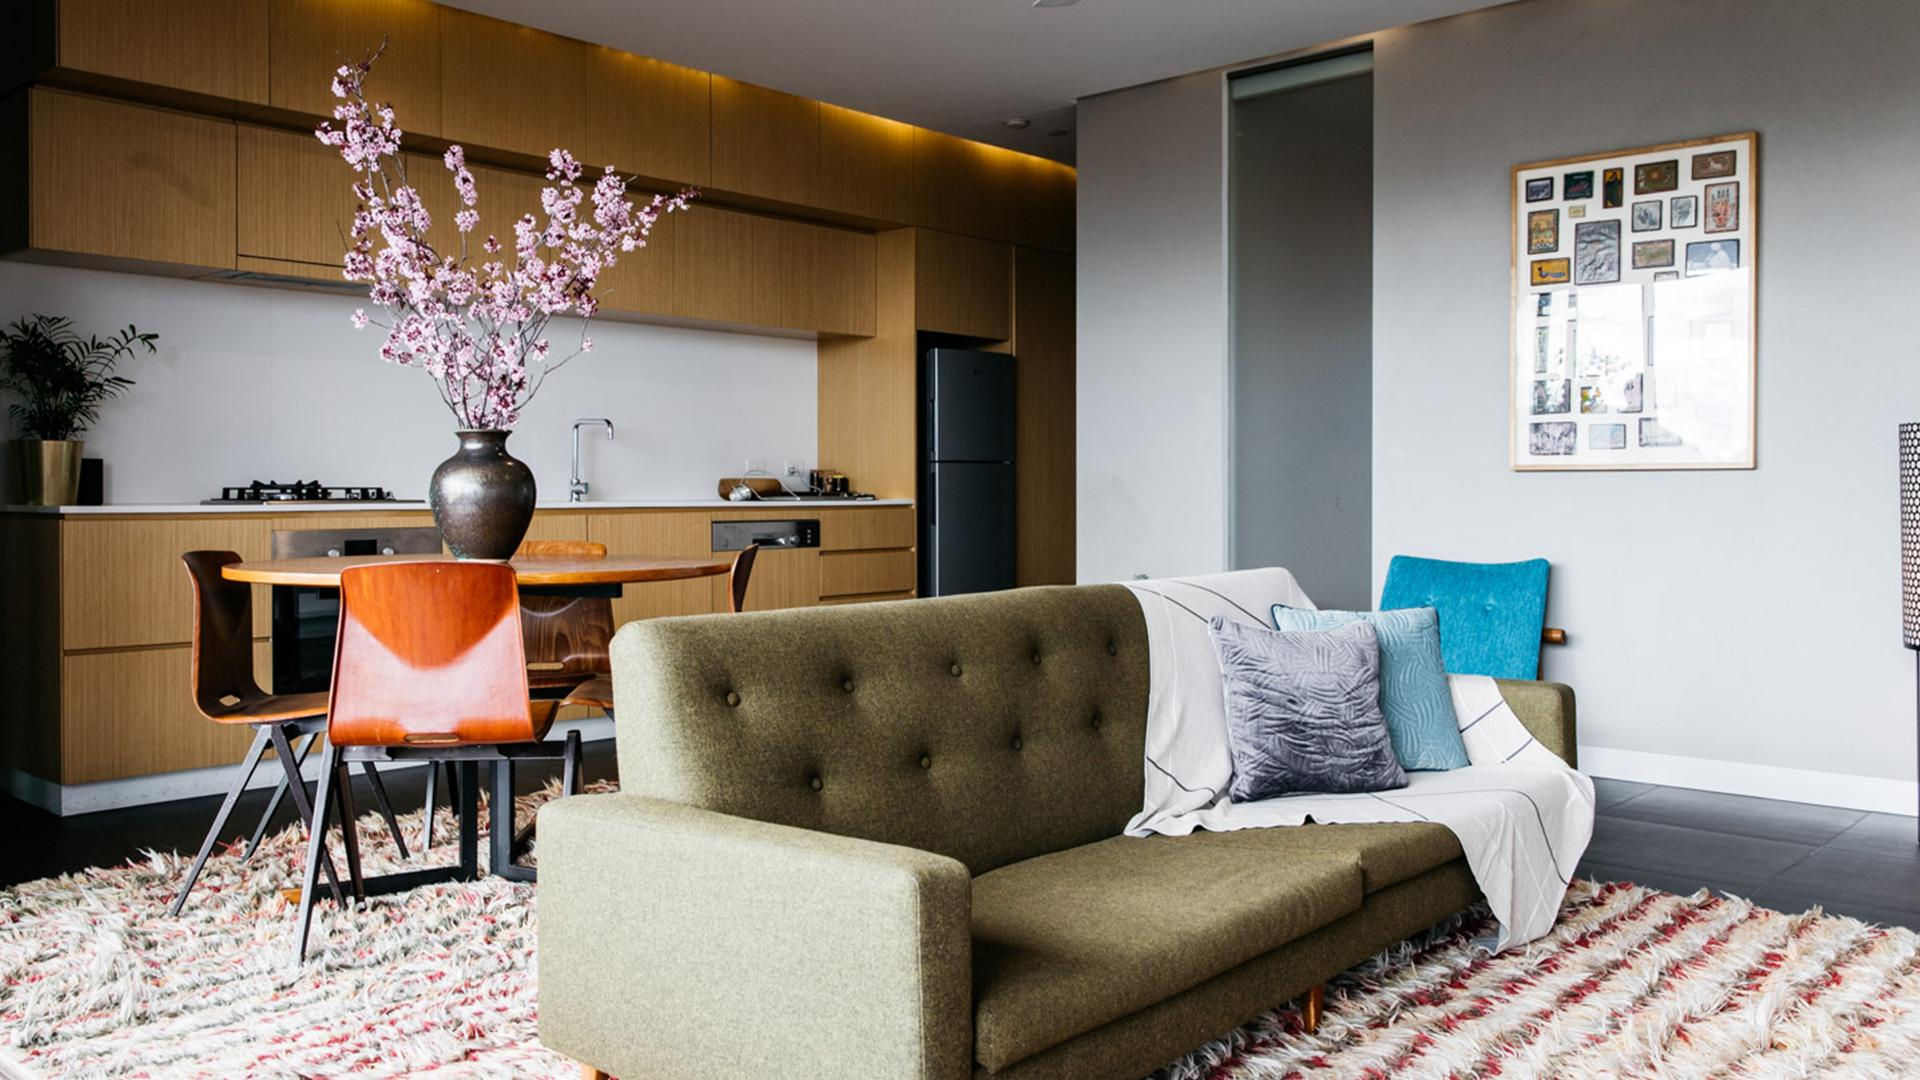 Two Bedder Deluxe image 1 at Nishi Apartments Eco-Living by Ovolo by null, Australian Capital Territory, Australia